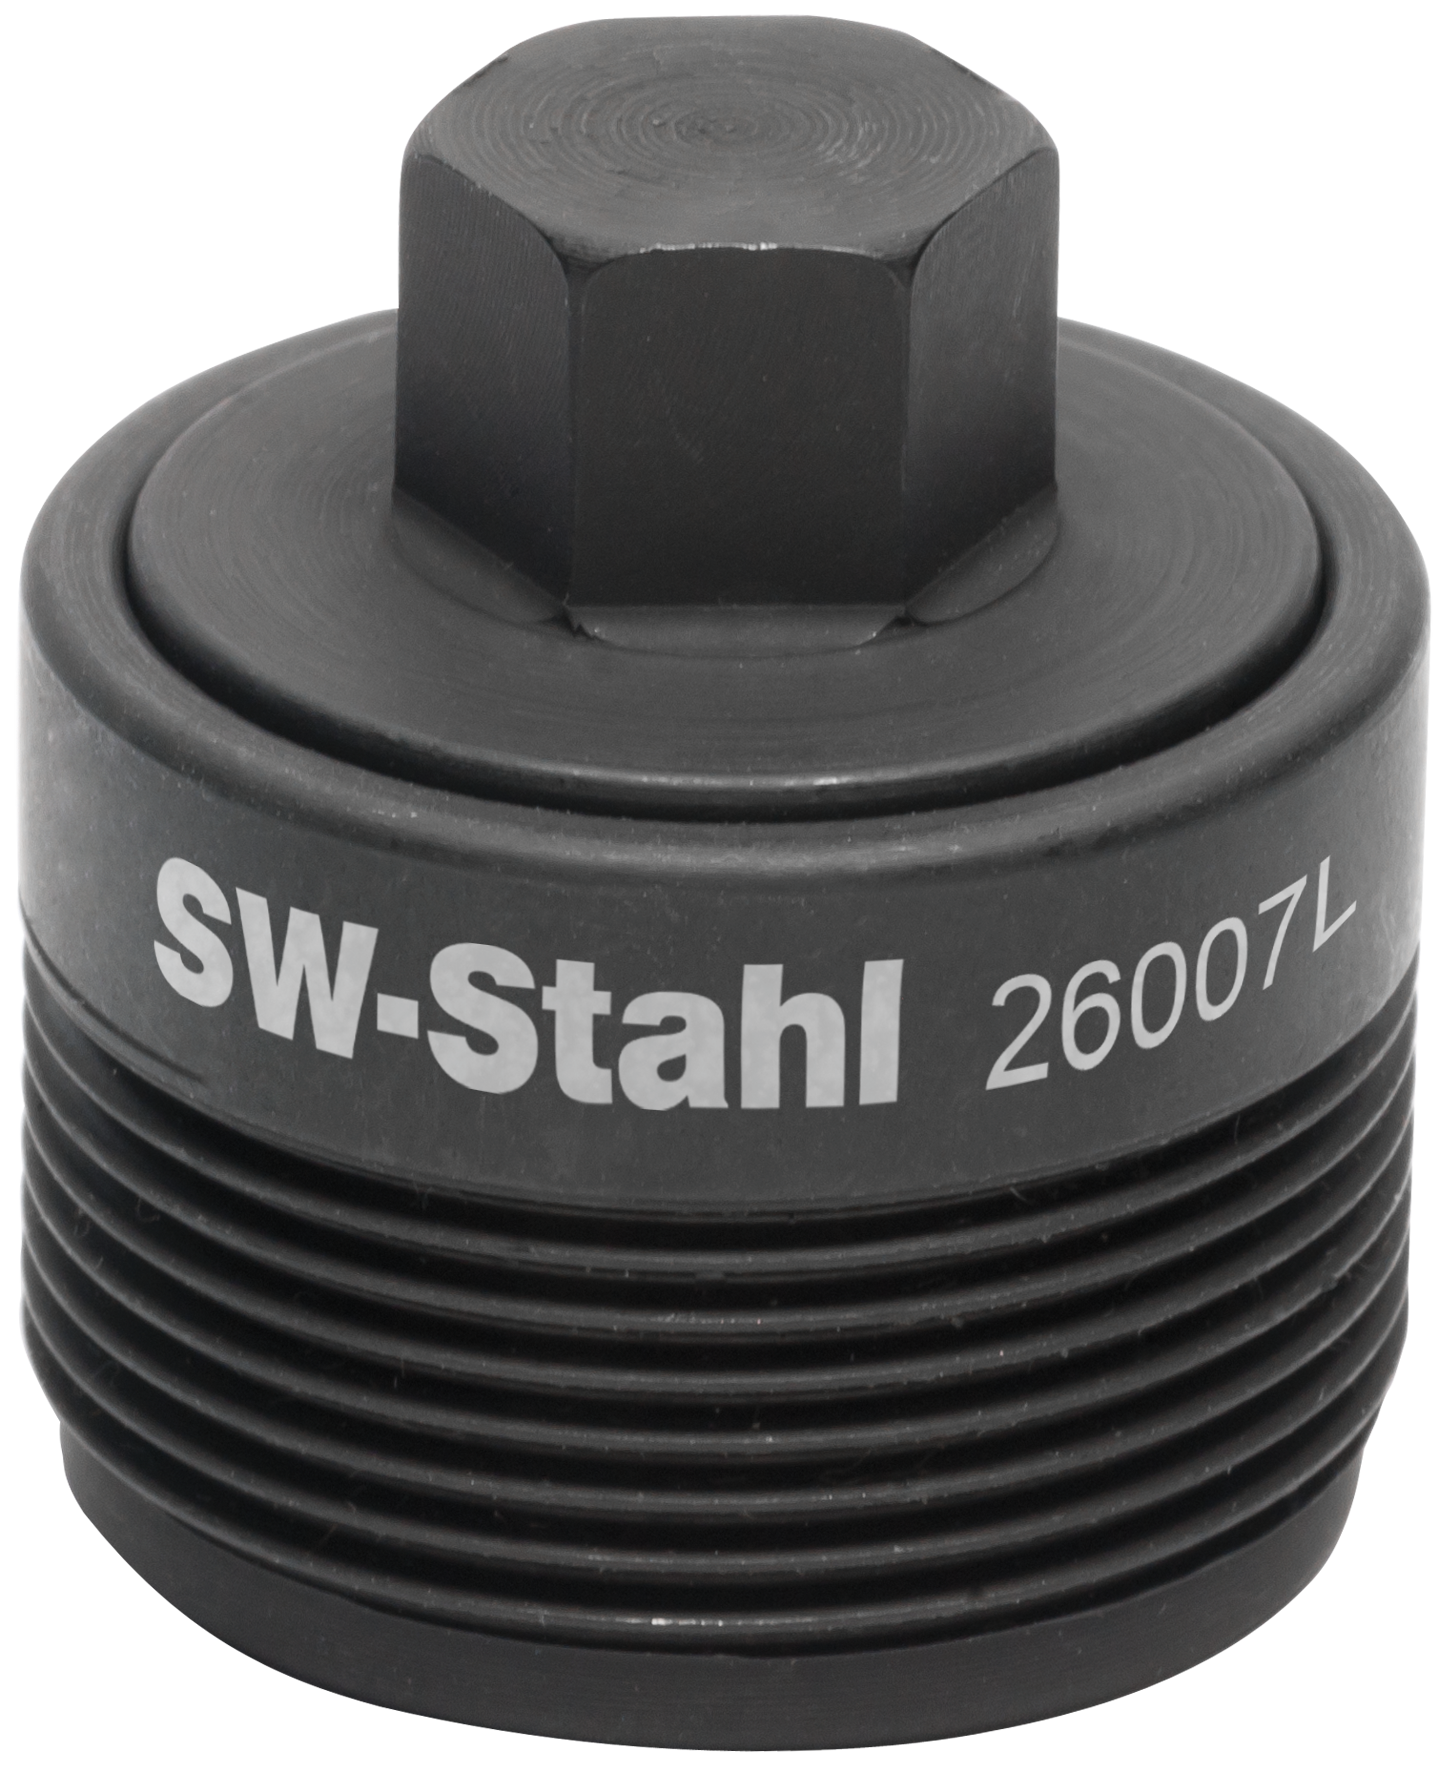 SWSTAHL High-pressure pump pull-off device 26007L